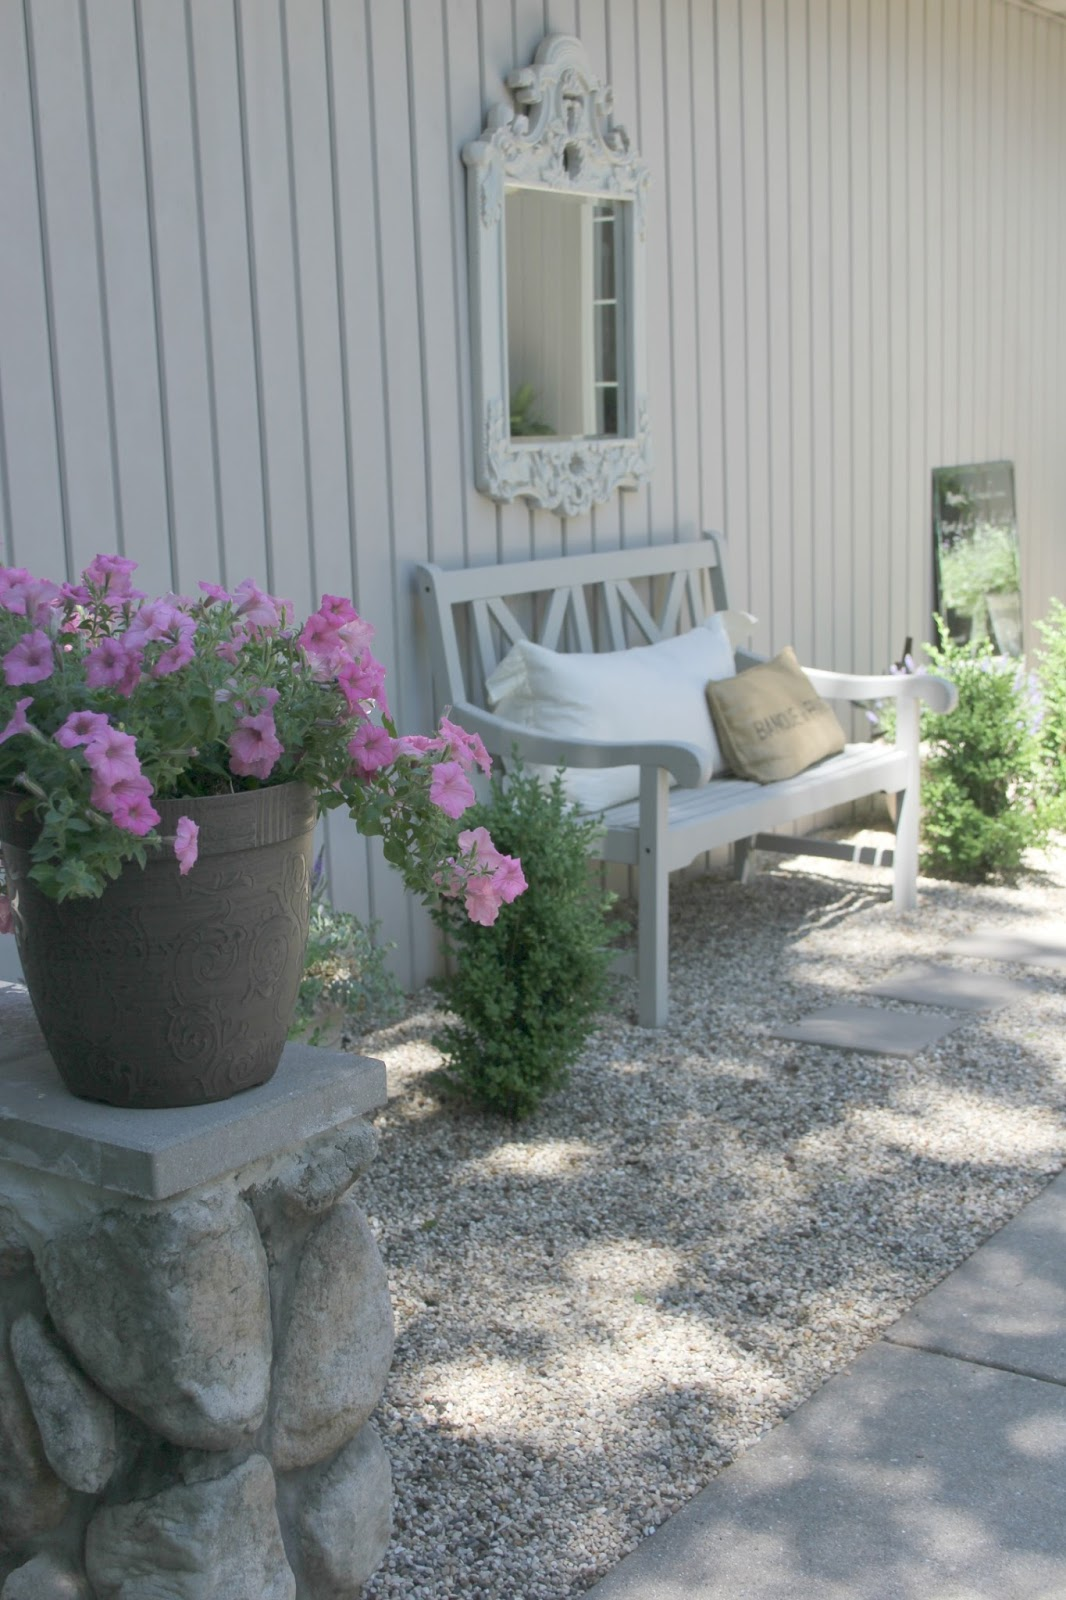 Peaceful living in a French country courtyard with pea gravel. Come be inspired on Hello Lovely by 7 Low Cost Timeless Decorating Ideas That Don't Involve the Dollar Store As Well As Photos Around My House.